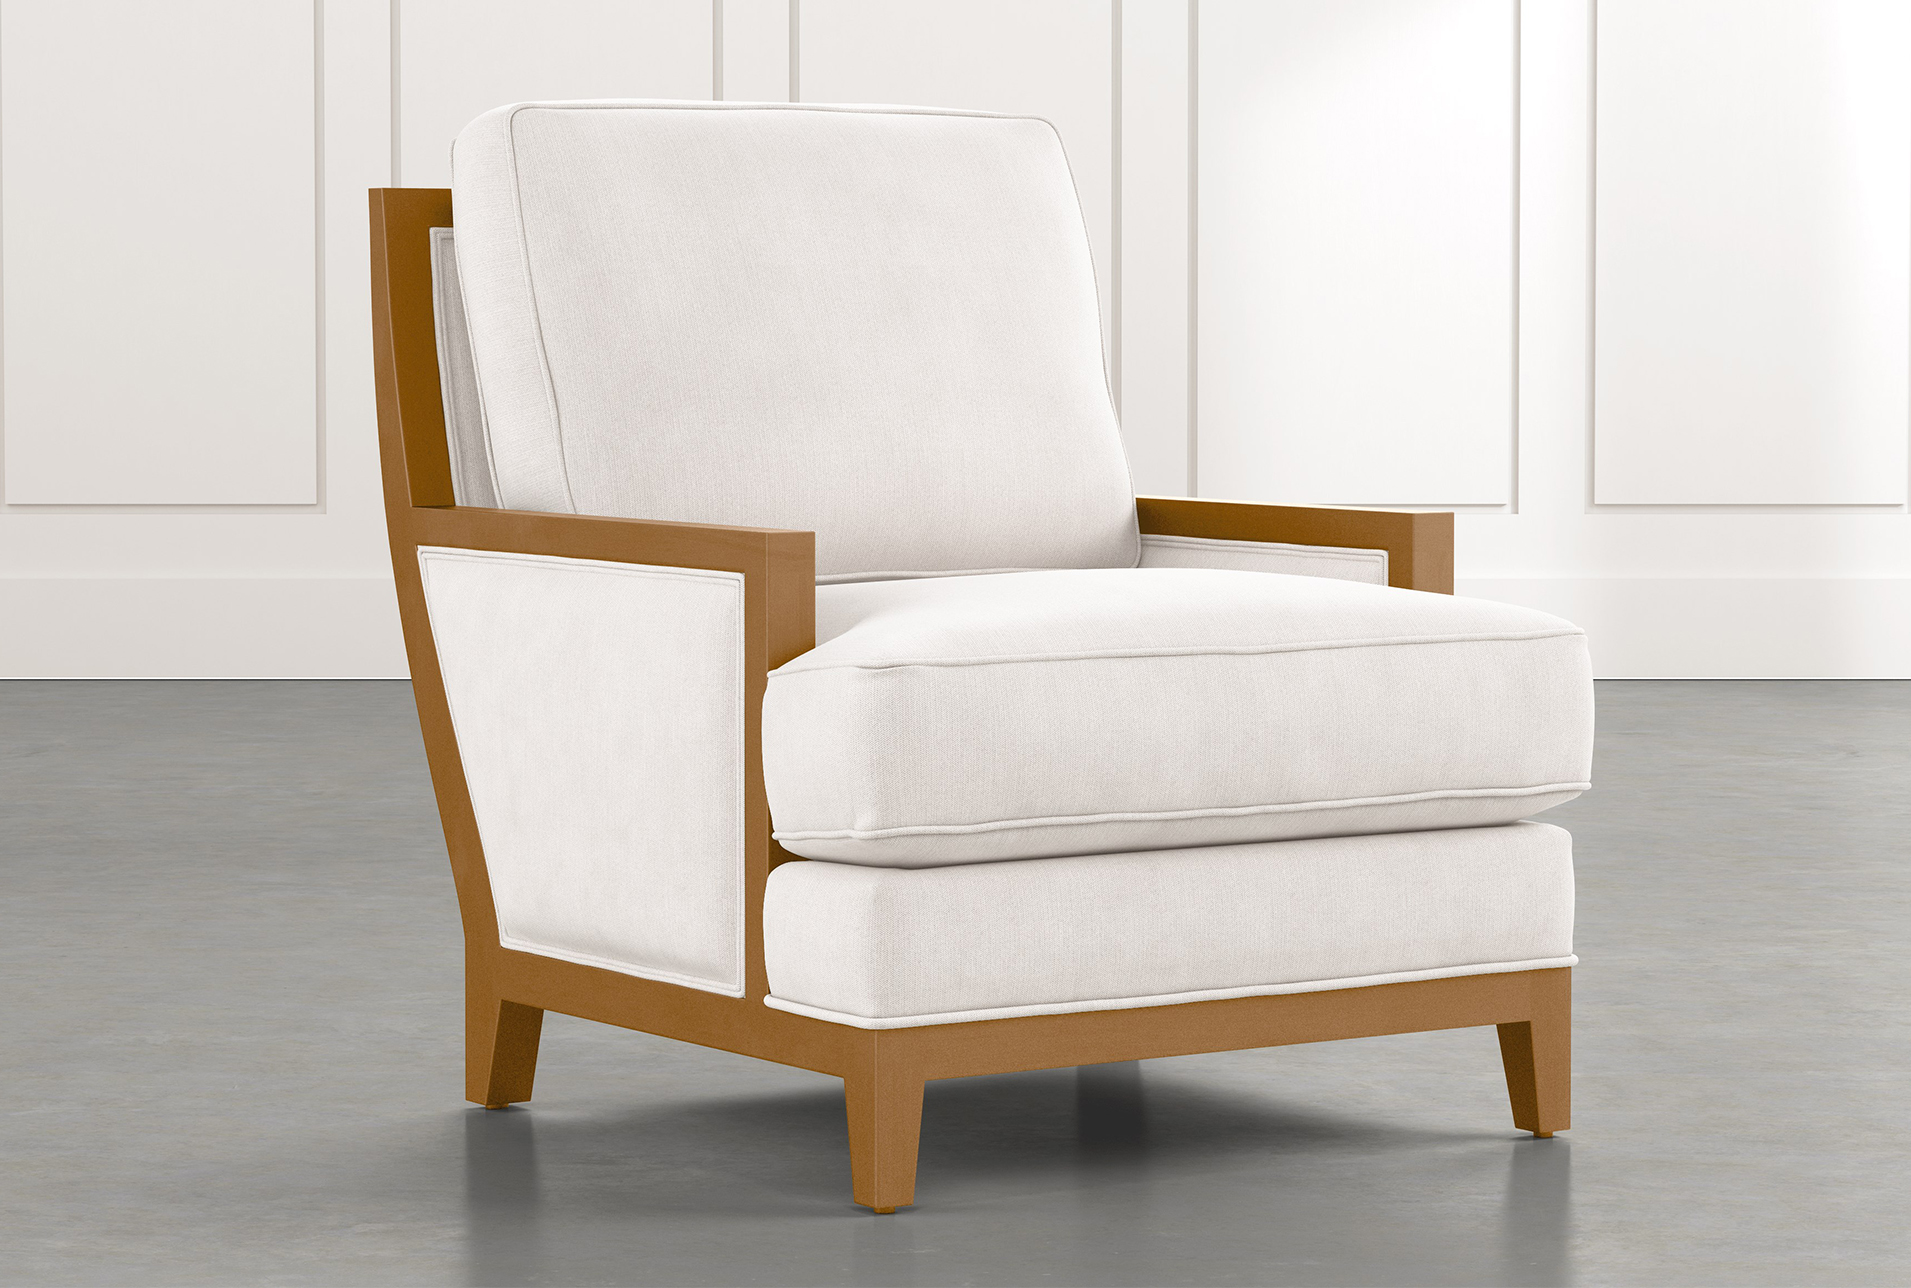 Ordinaire Abigail II White Accent Chair (Qty: 1) Has Been Successfully Added To Your  Cart.